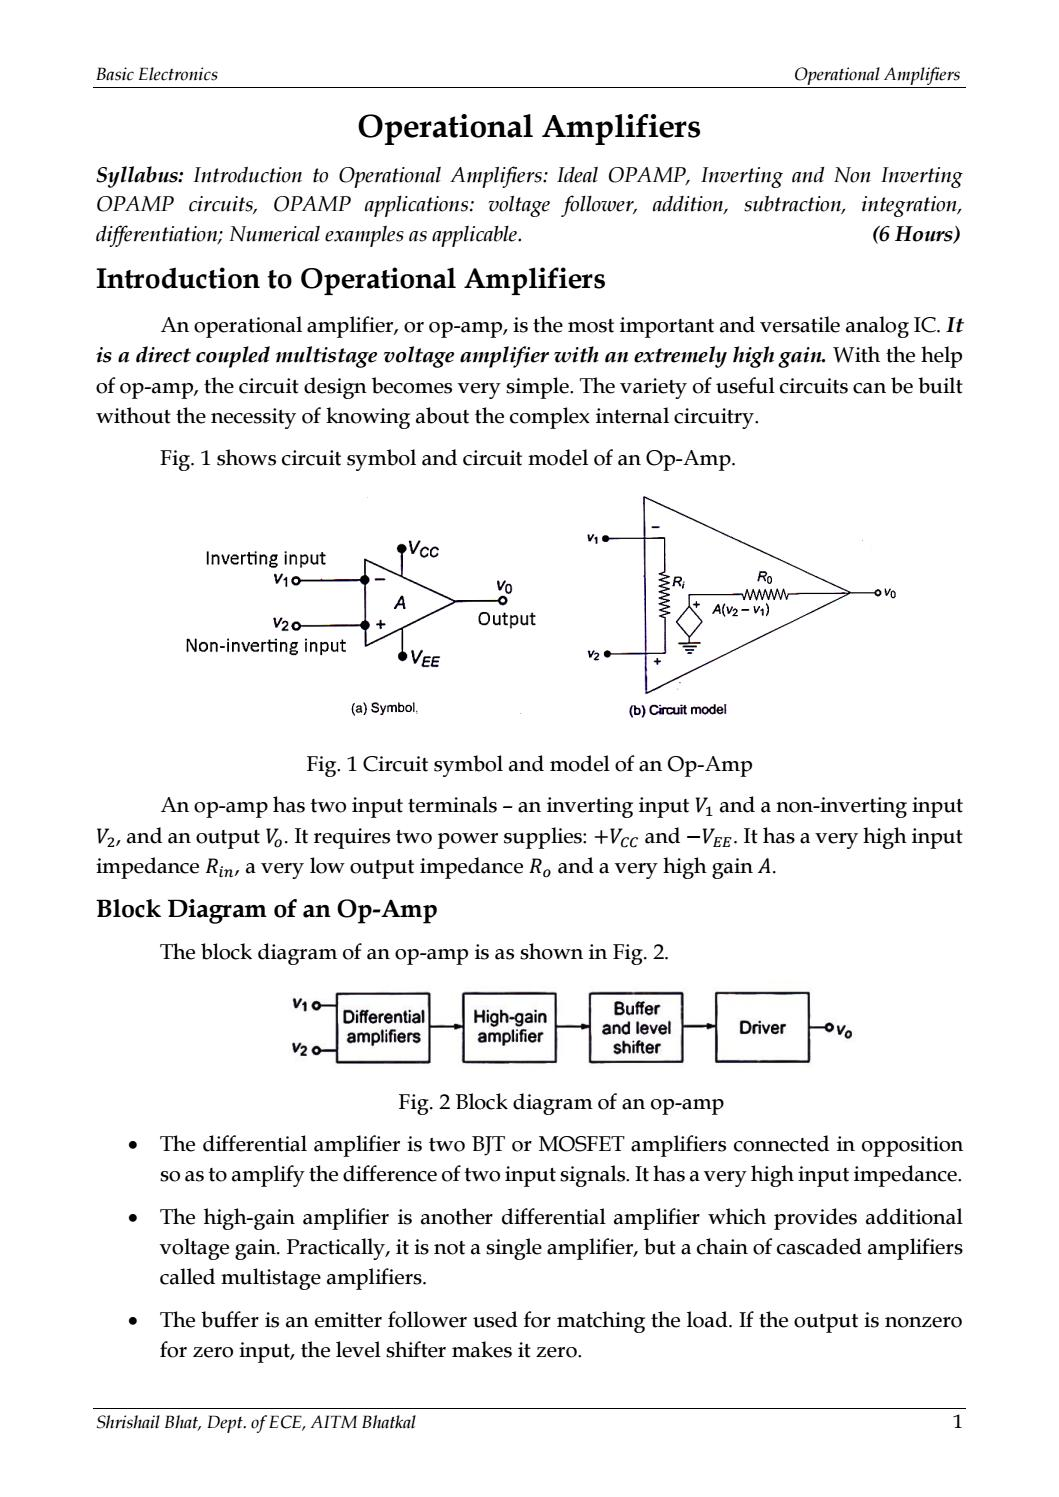 Basic Electronics Introduction To Operational Amplifiers Module 2 Power Op Amp Circuit By Shrishail Bhat Issuu